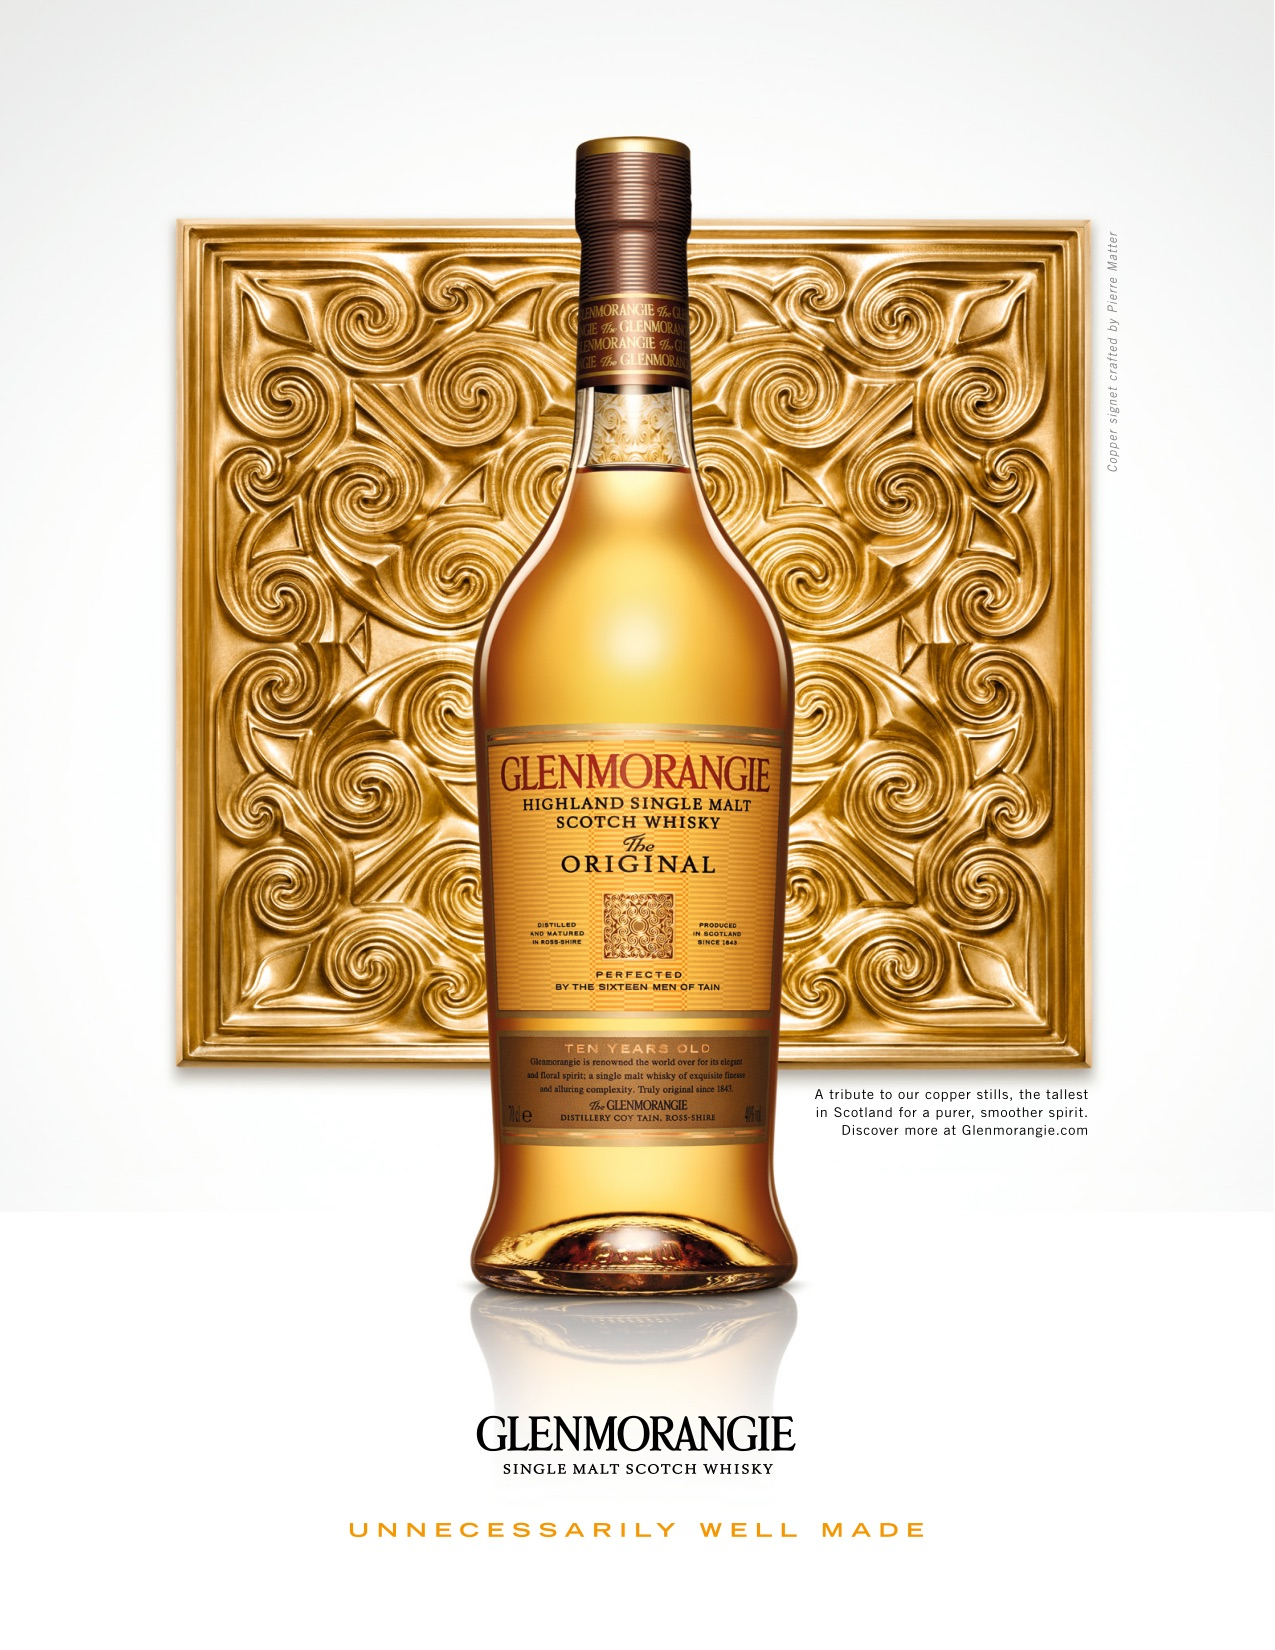 Glenmorangie Original in front of Copper Signet